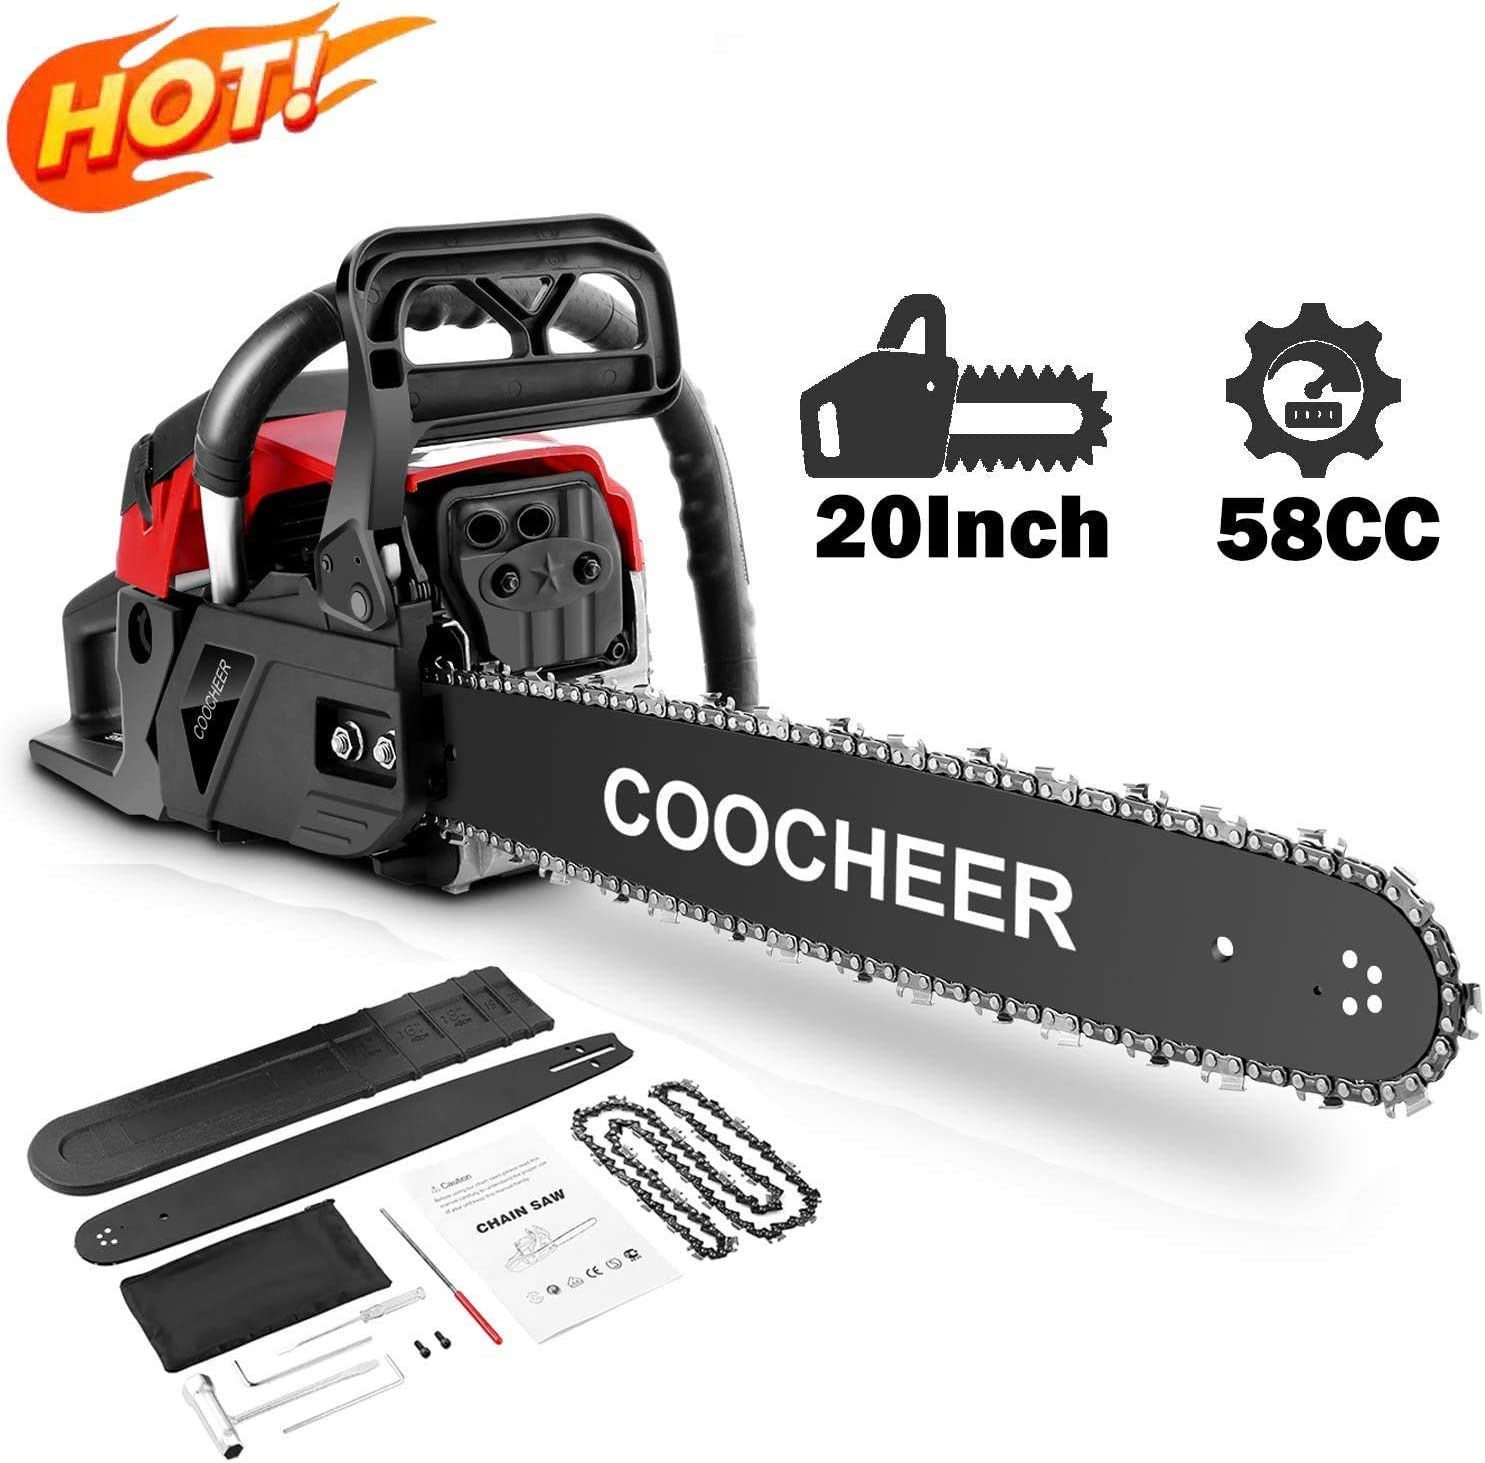 attempting 58CC Gas Engine 20 Inch Guide Board Chainsaw 2 Stroke Gasoline Powered Handheld Chain Saw with Tool Kit Red